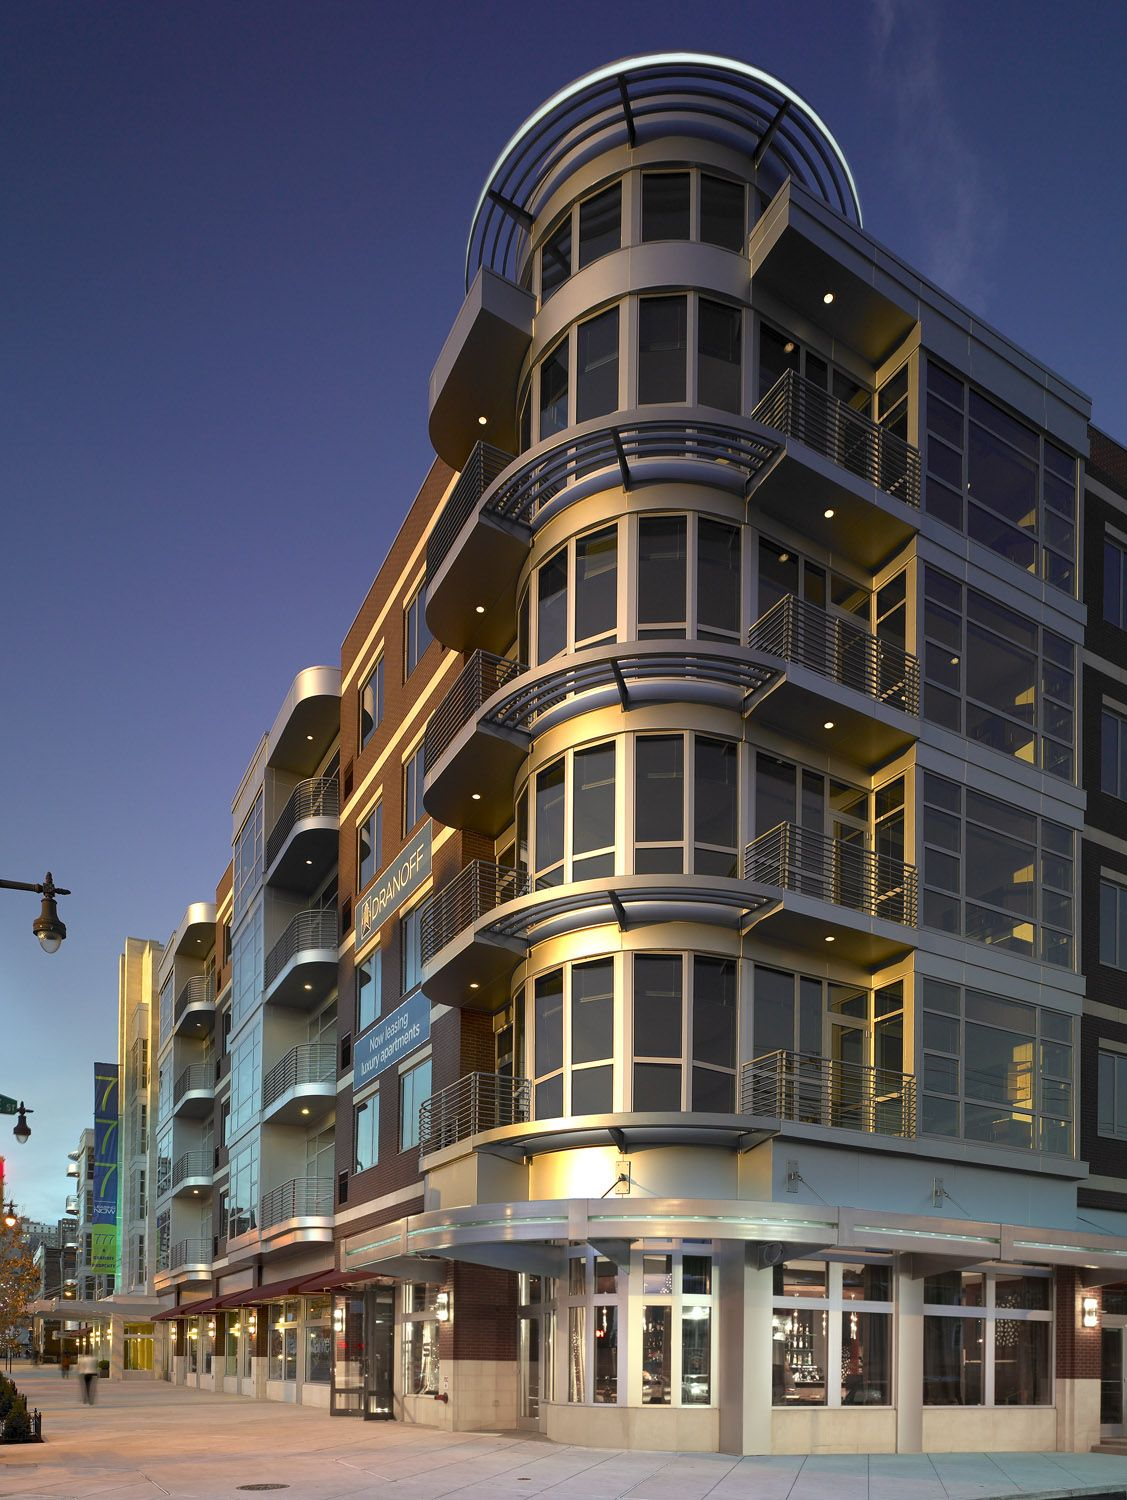 777 South Broad 1 and 2 bedroom luxury loft apartments